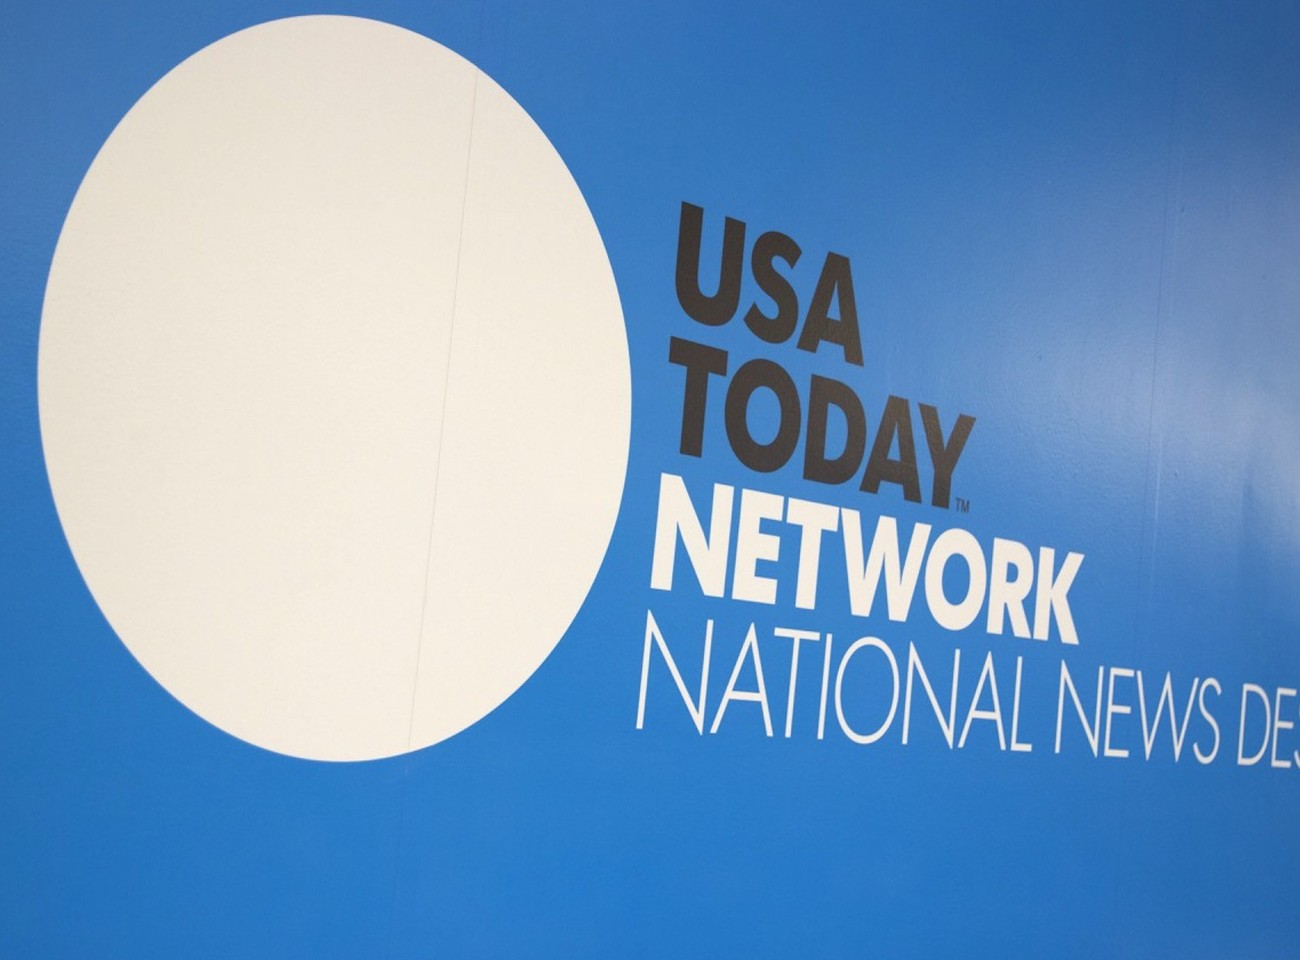 USA TODAY NETWORK Careers